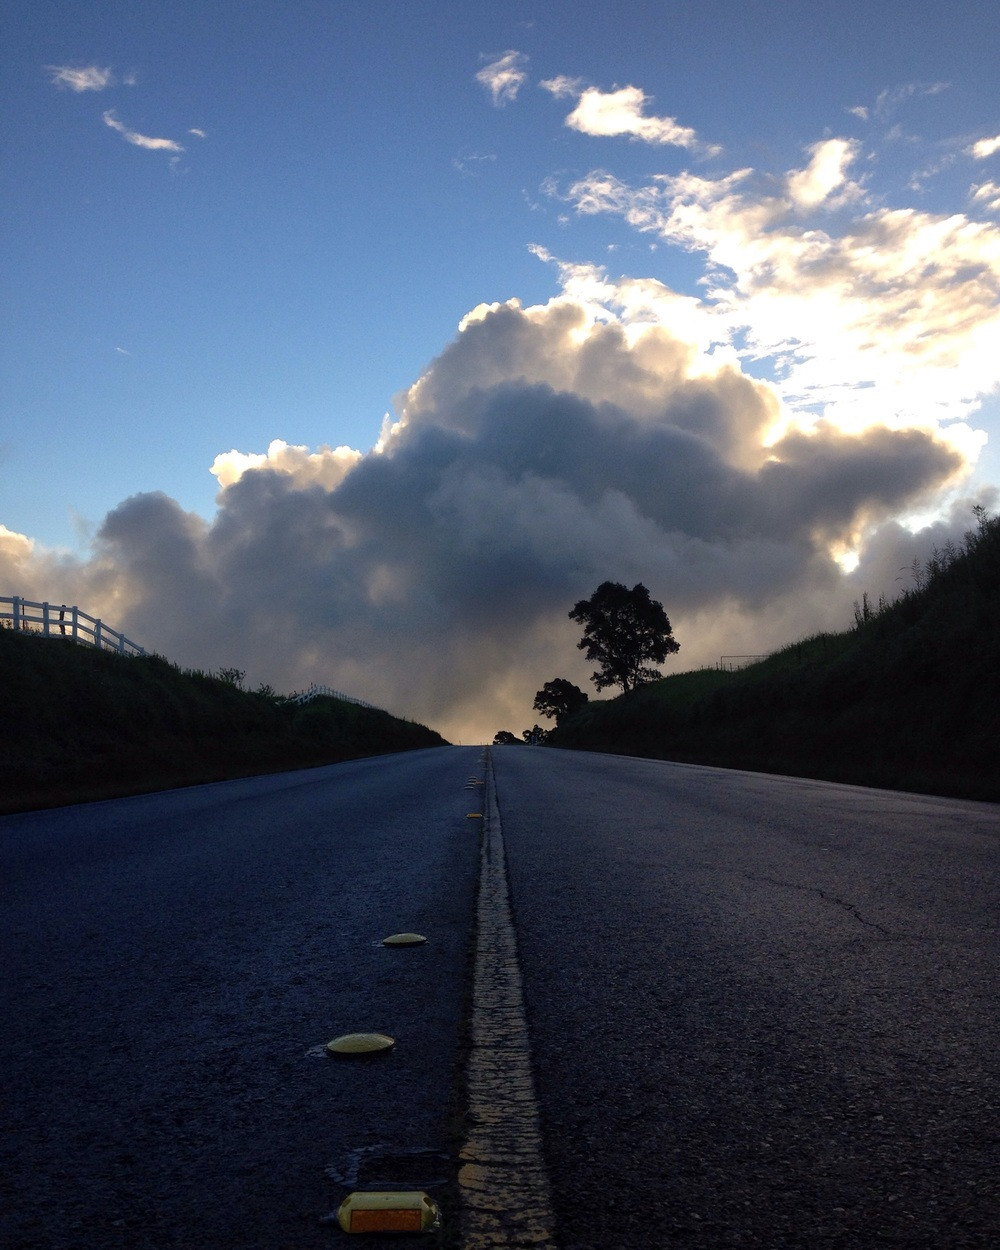 Driving into the clouds...at least it looked that way.